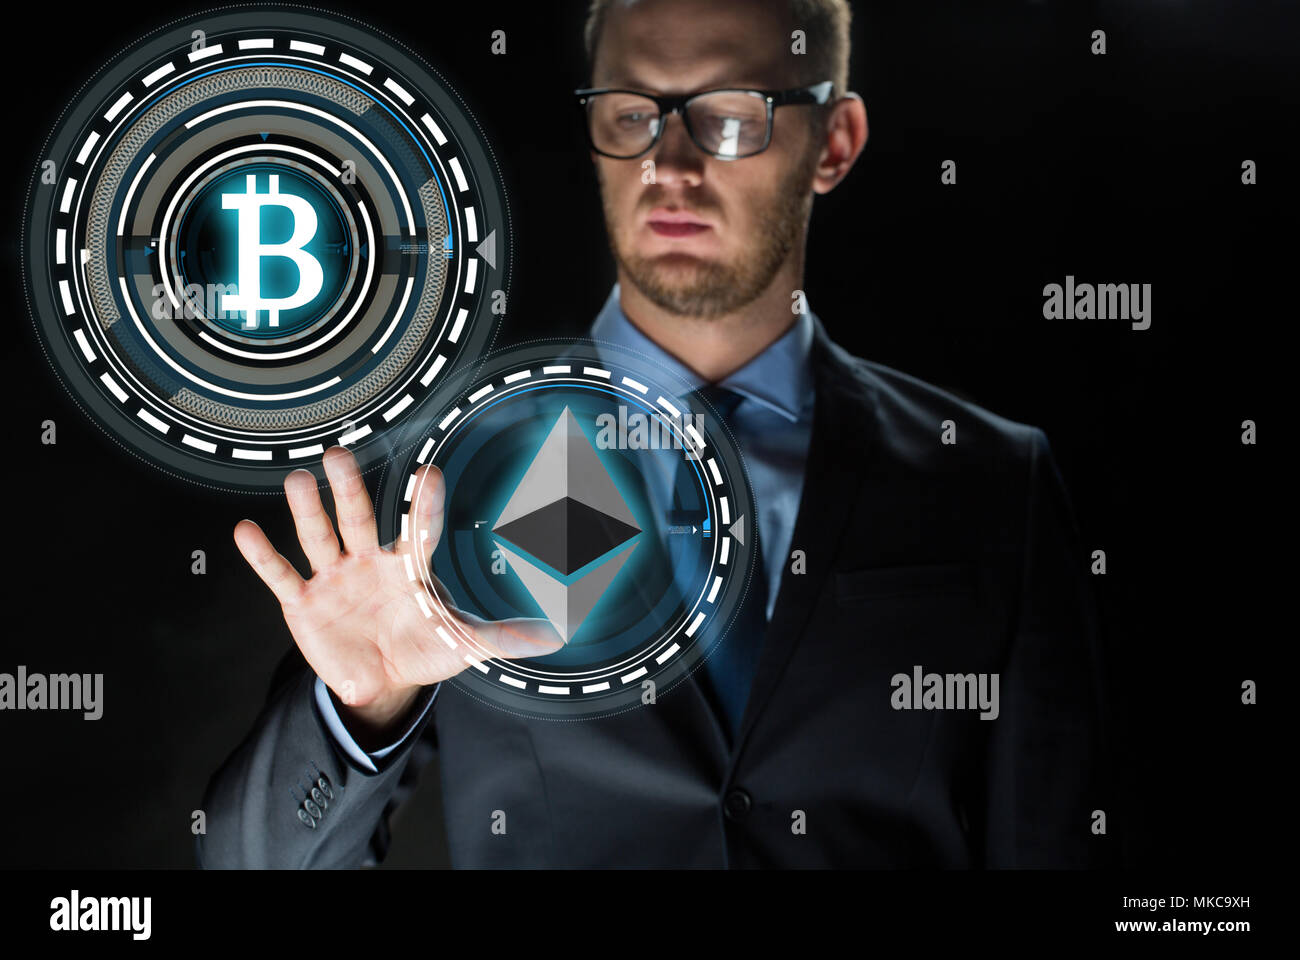 businessman with cryptocurrency holograms - Stock Image